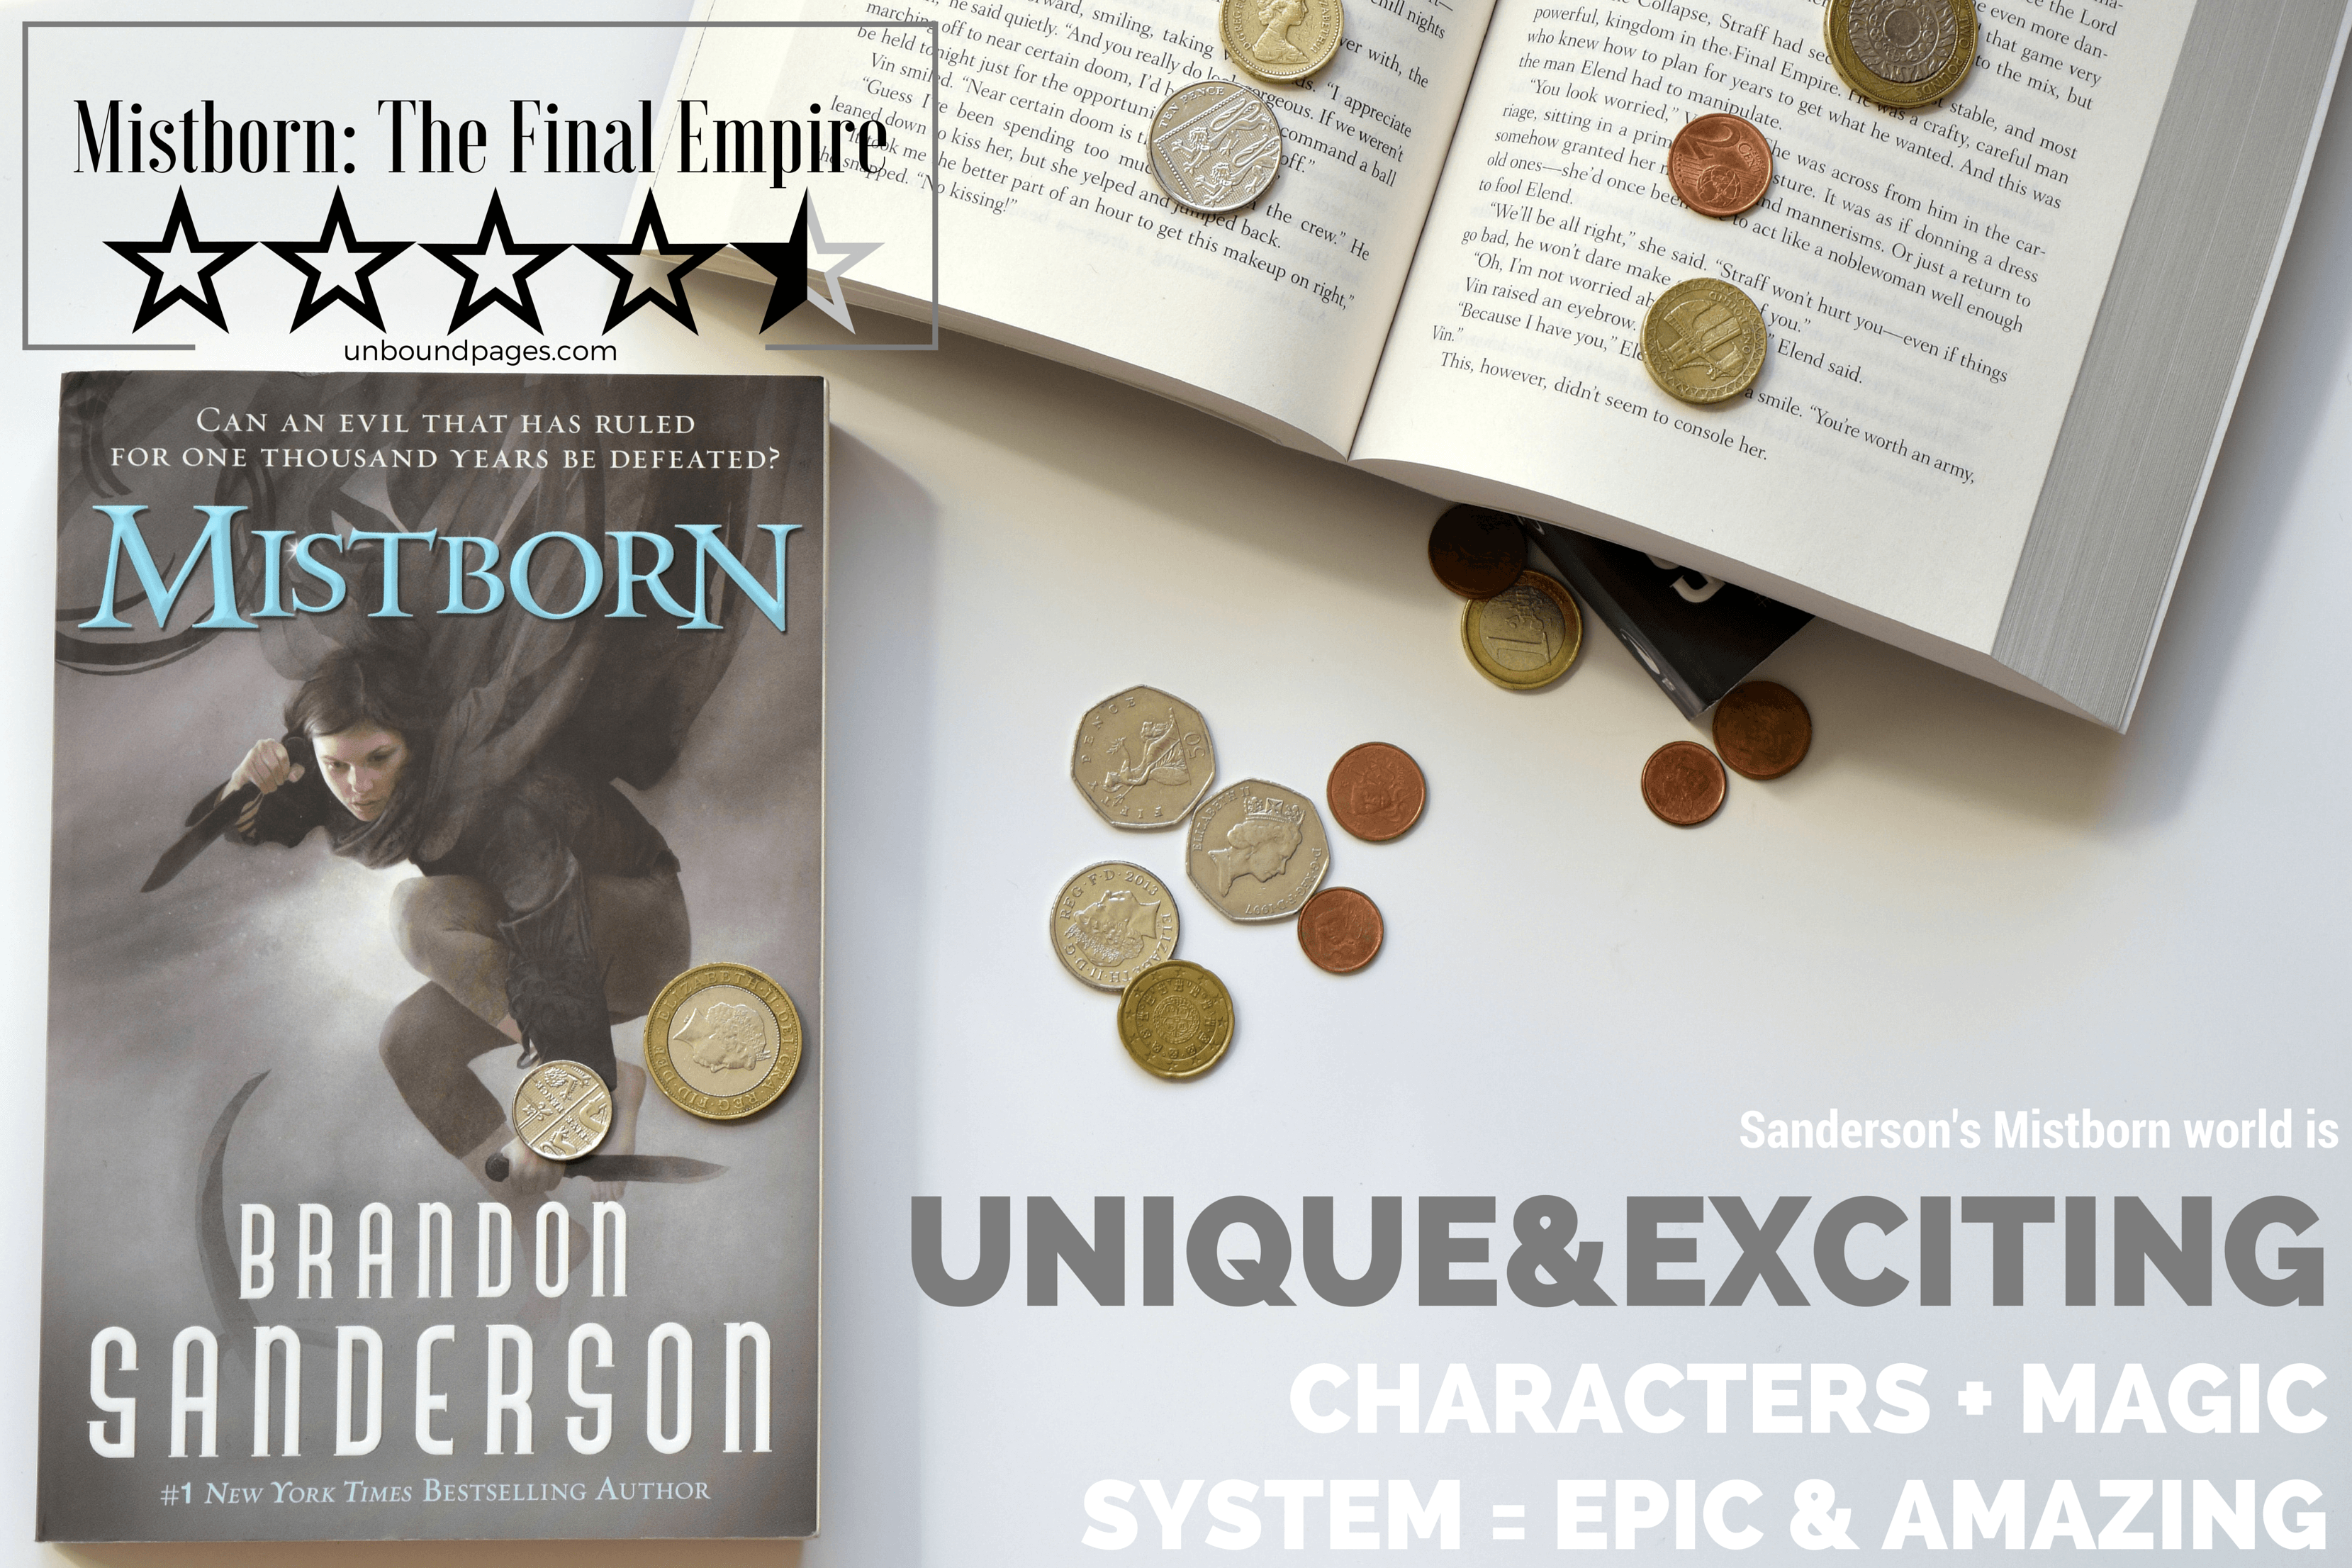 Mistborn: The Final Empire was everything I hoped & been promised it would be! The magic system, the characters, the world, everything was absolutely incredible. Brandon Sanderson is a master! - unboundpages.com